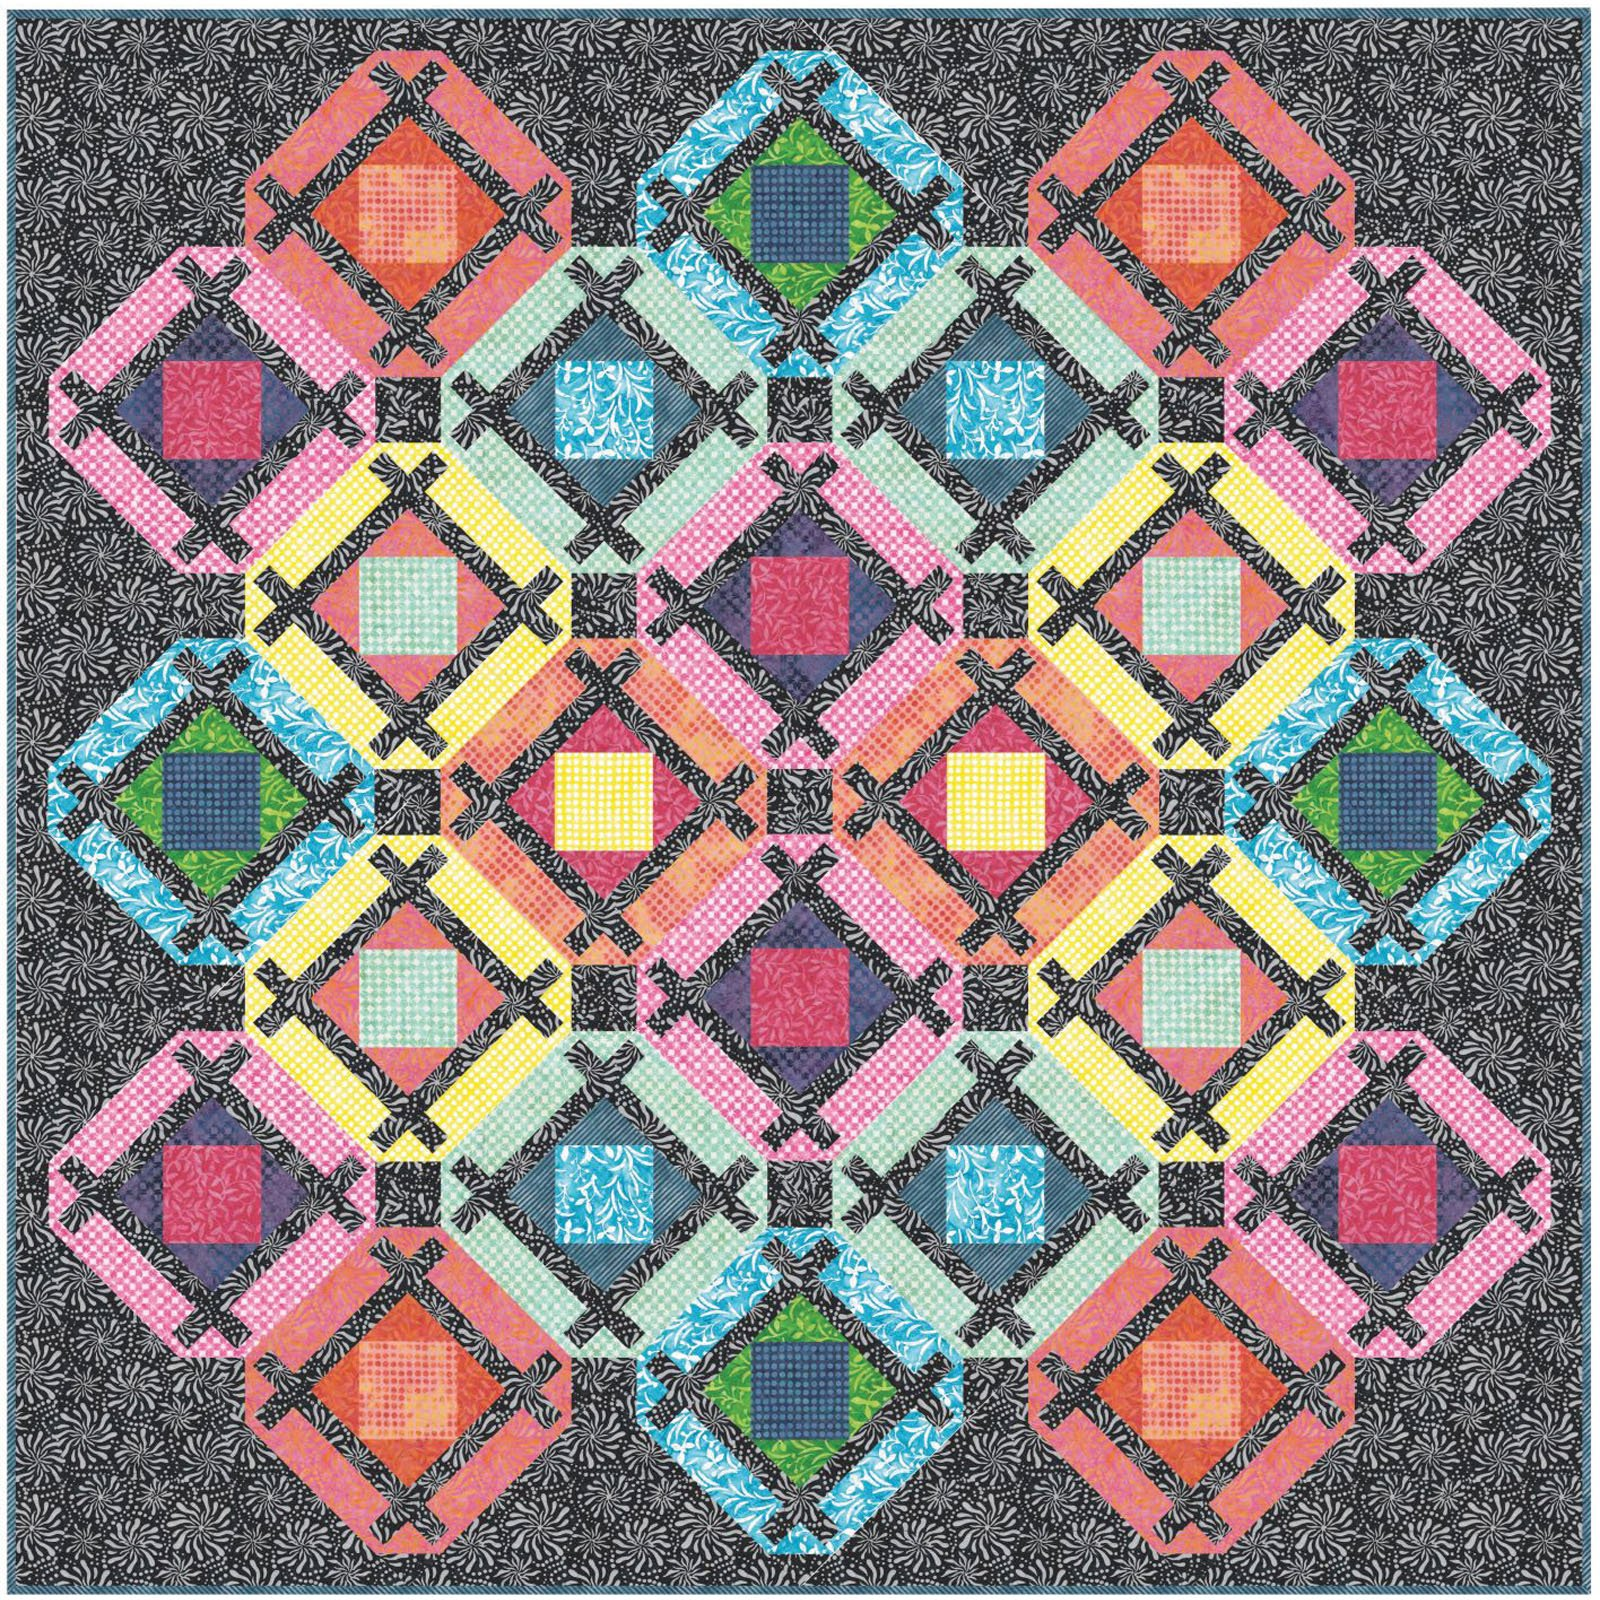 EESC-KITMASCTB - COLOR THERAPY BATIKS KIT 68 X 68 - ARRIVING DECEMBER 2020